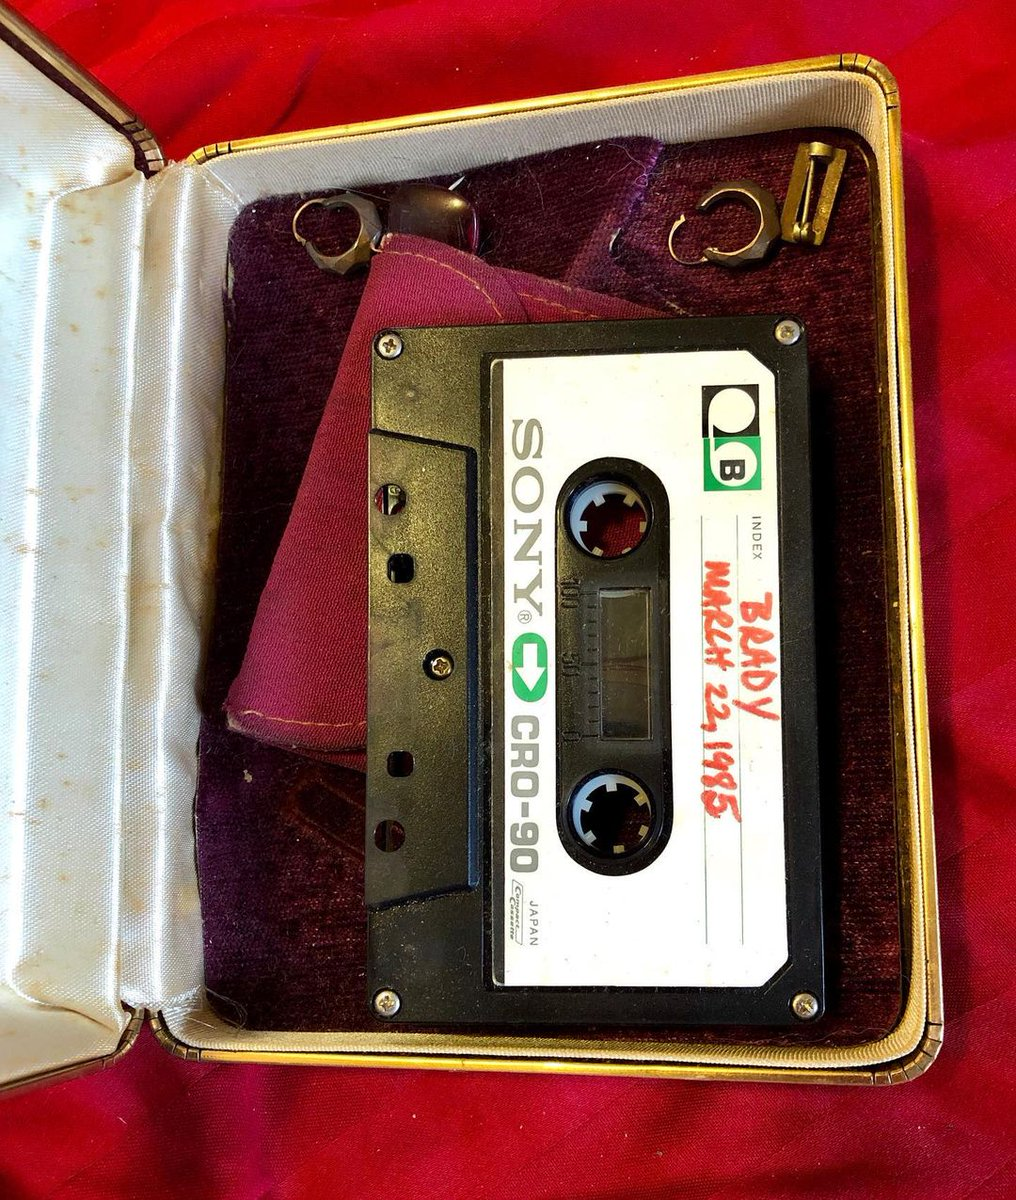 """Just found a #cassette of the first #interview I ever did (for my high school literary magazine): #JimBrady, White House #PressSecretary, post-gunshot wound. As soon as the interview cuts off, you can hear me singing Teena Marie's """"Playboy."""" #1985 https://t.co/hLnKguM62h"""